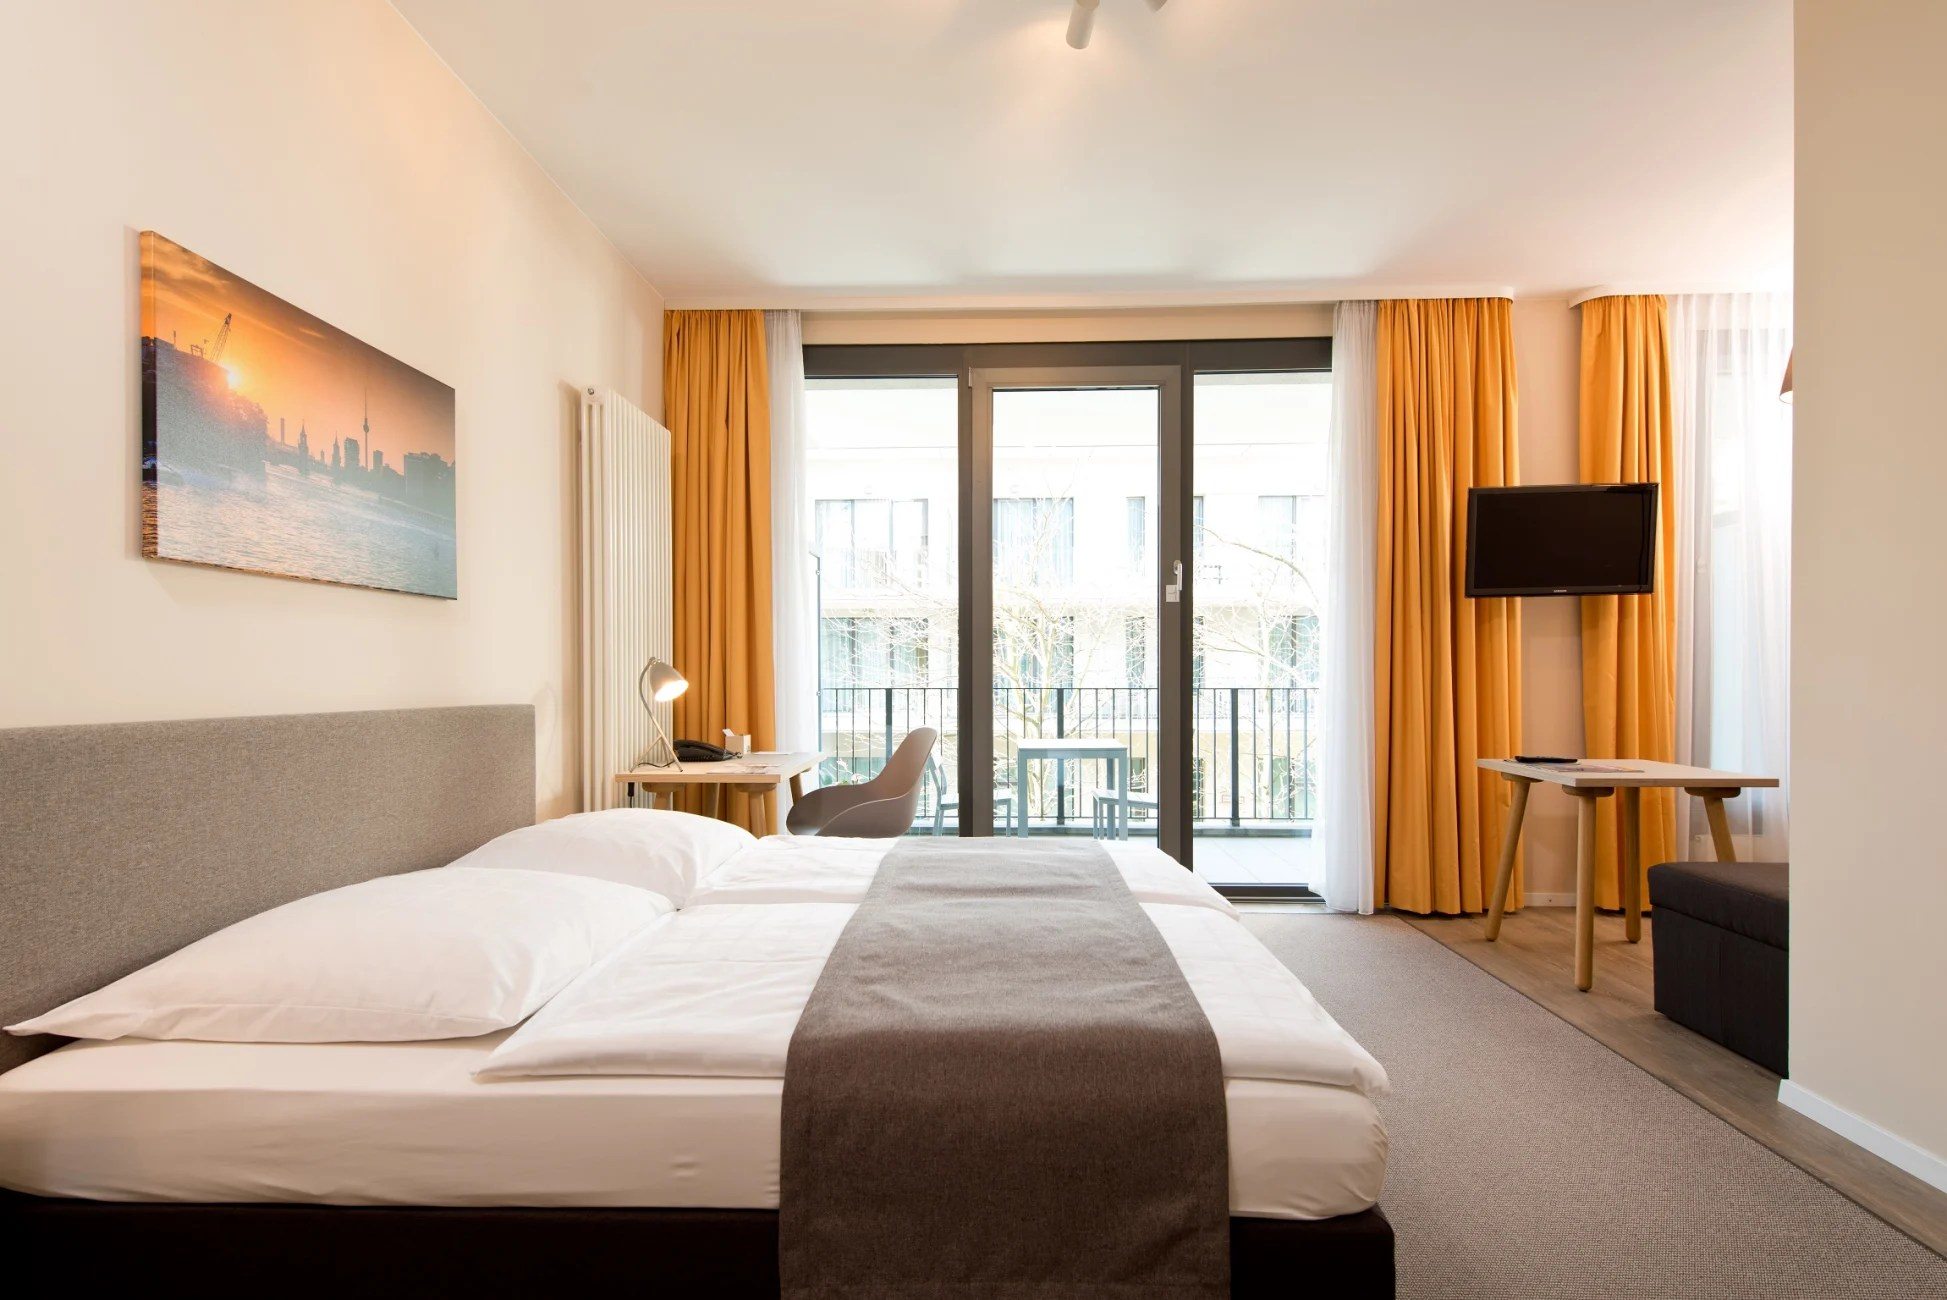 Arte Luise Kunsthotel Serviced Apartment Aparthotel Residenz Am Deutschen Theater